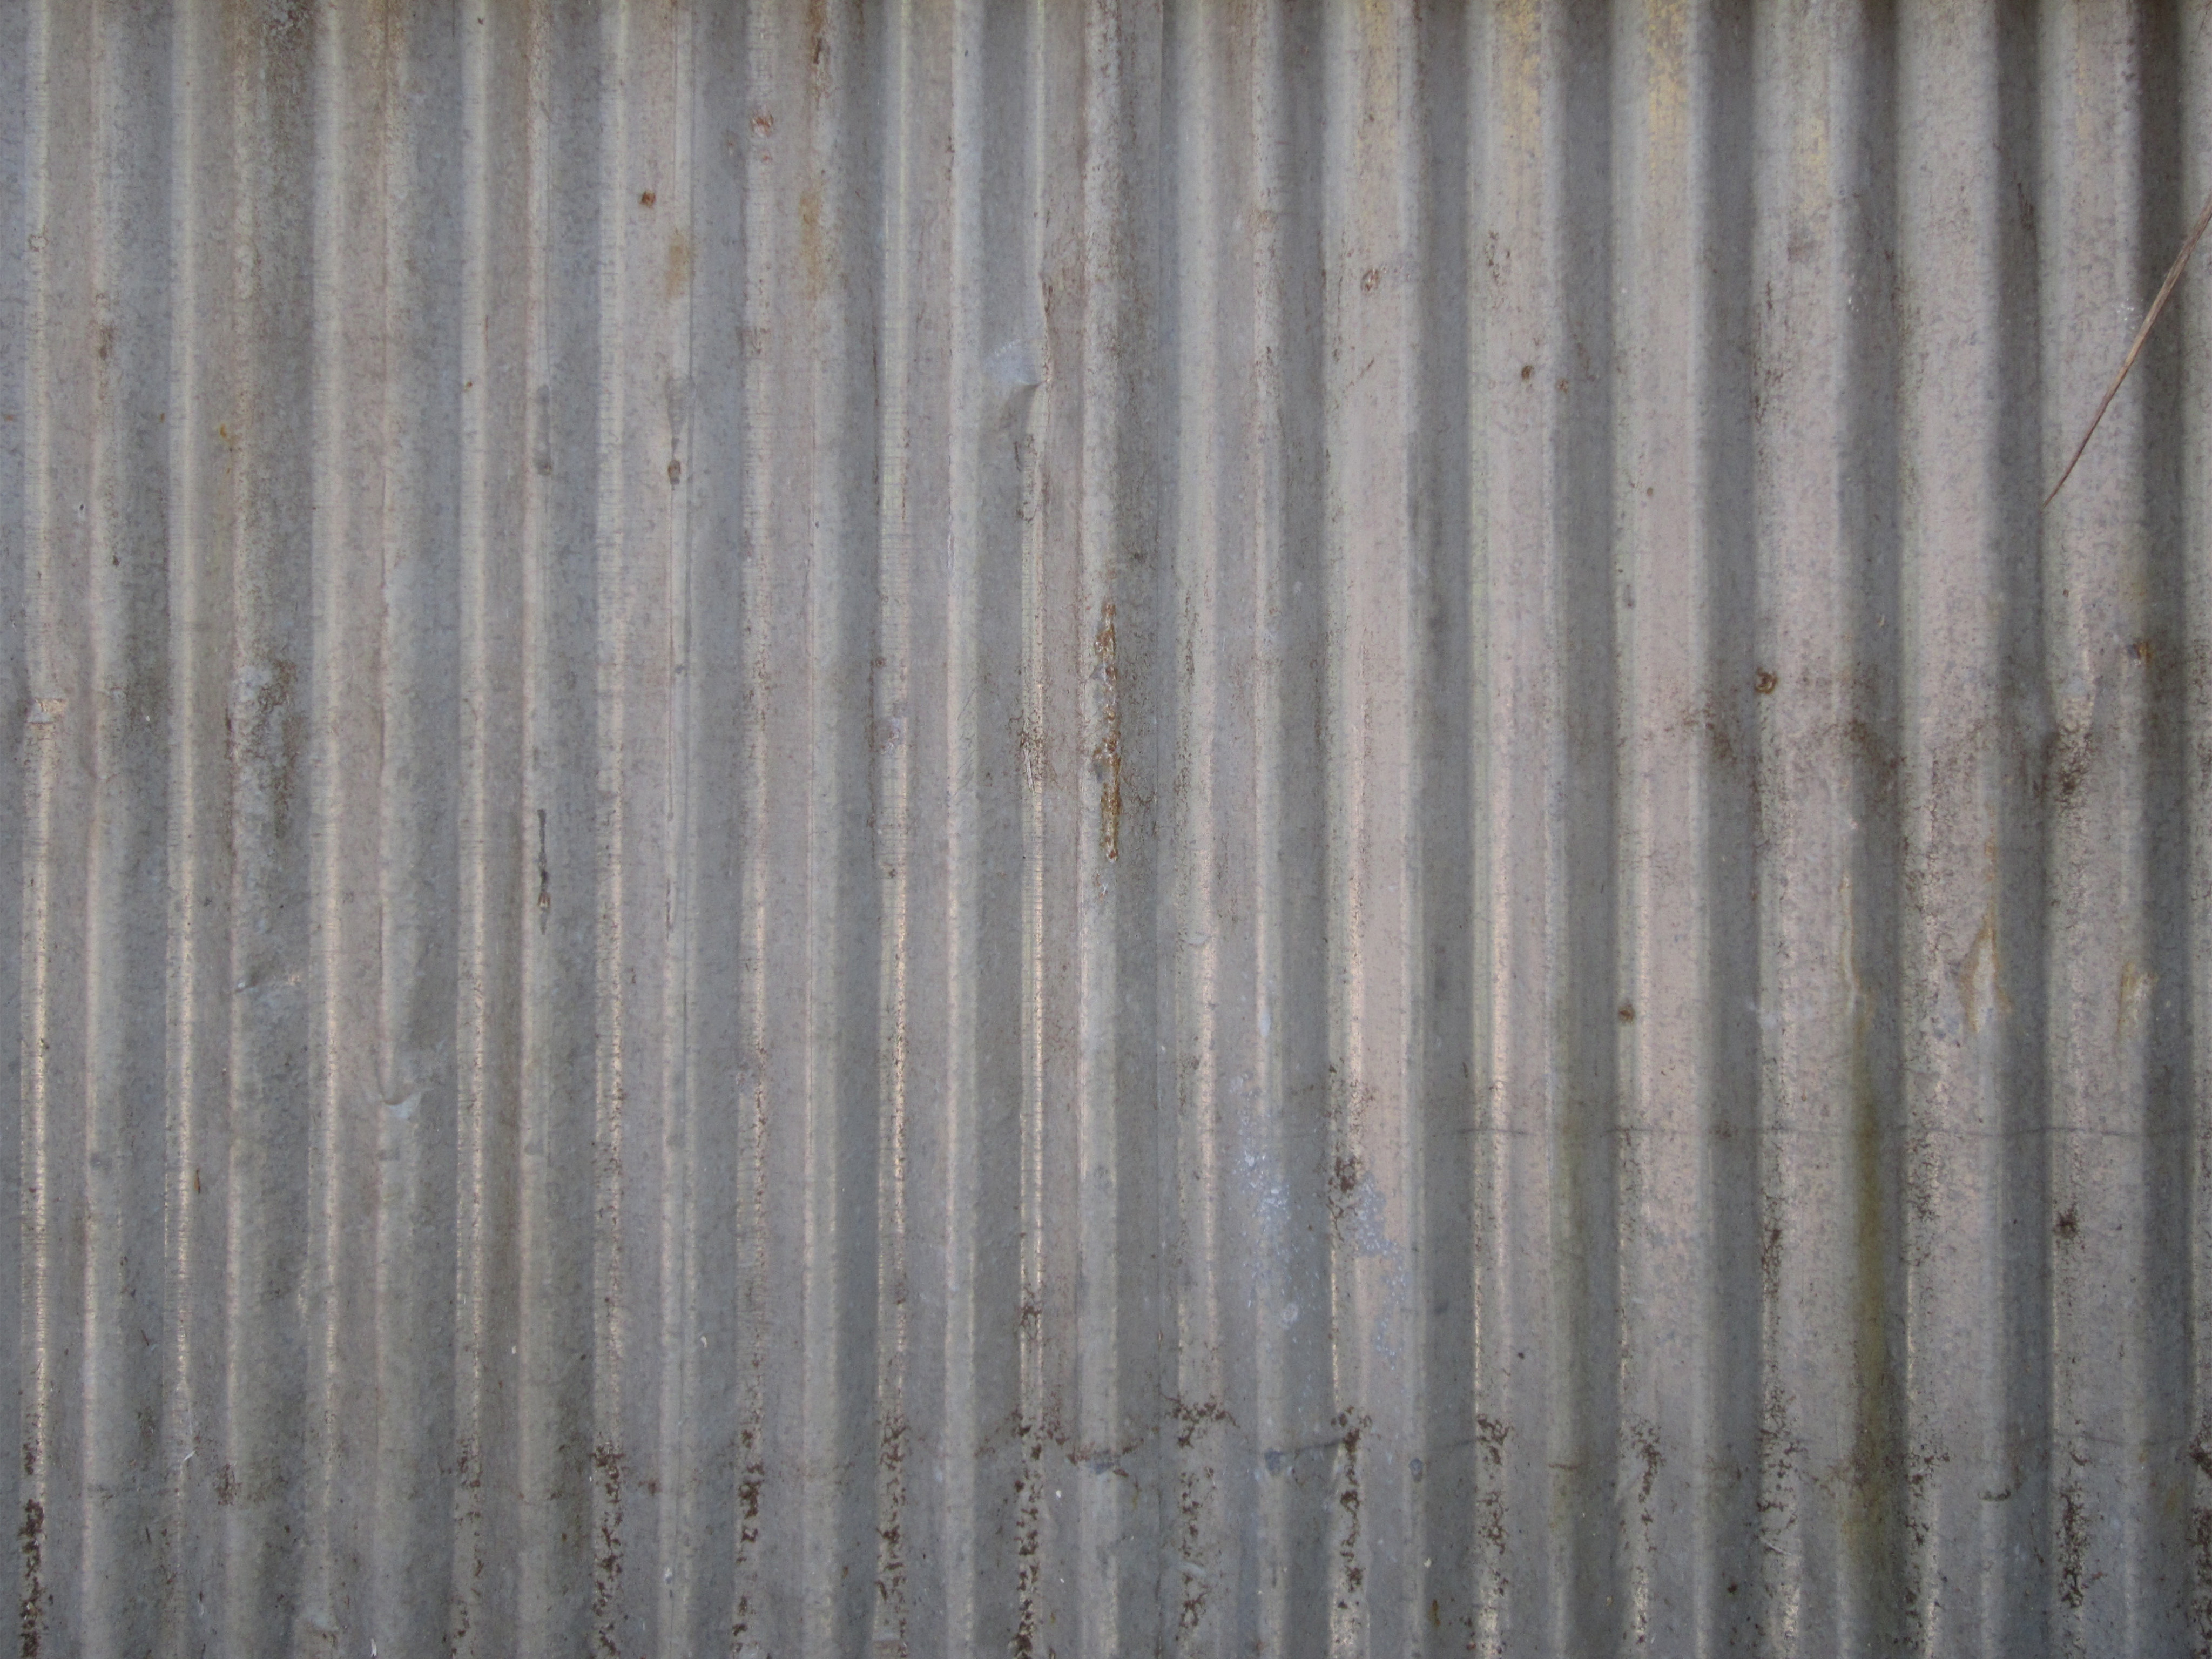 Corrugated Tin Pictures To Pin On Pinterest PinsDaddy